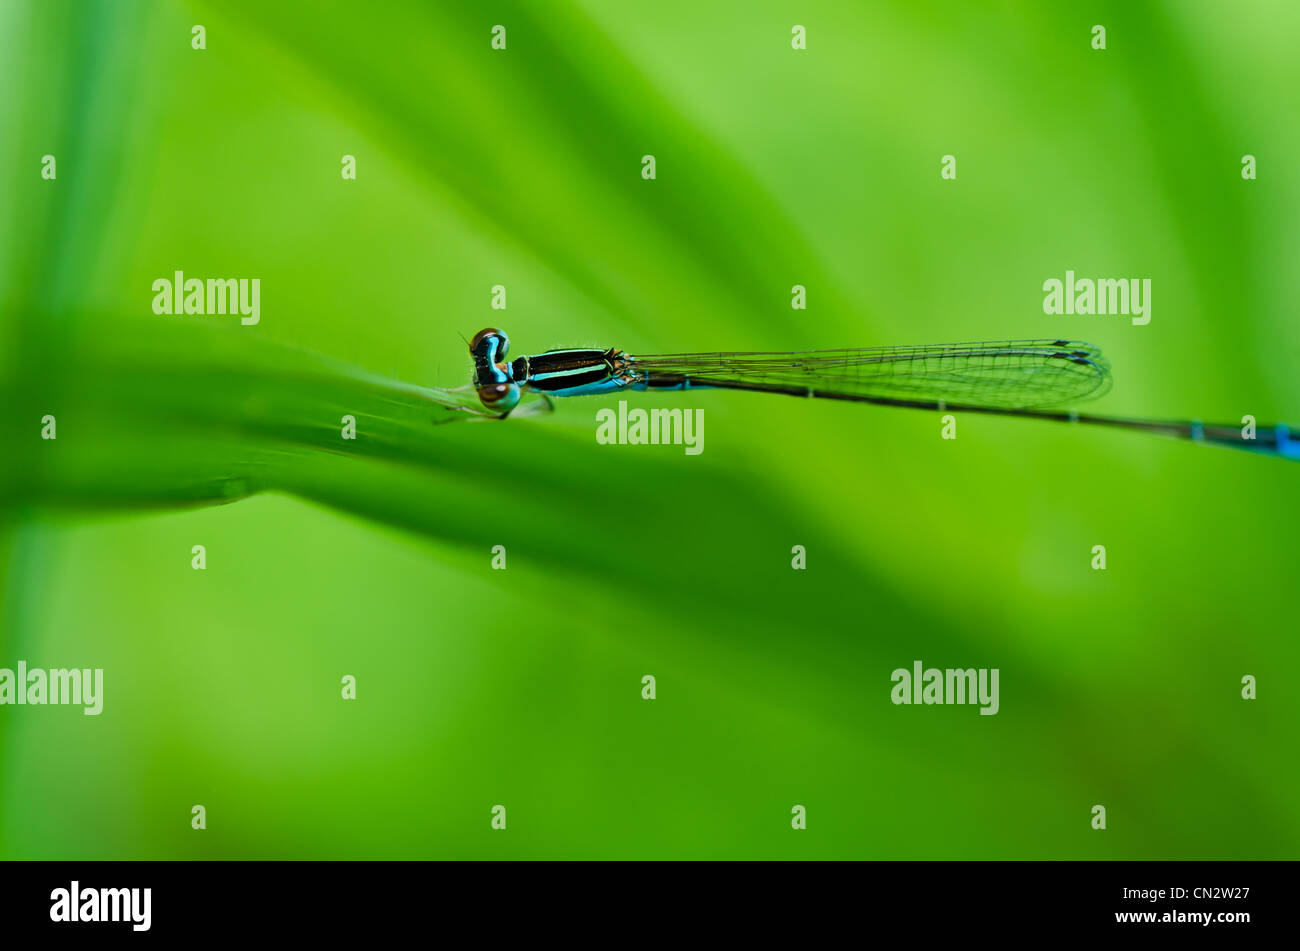 damselfly or little dragonfly in green nature - Stock Image